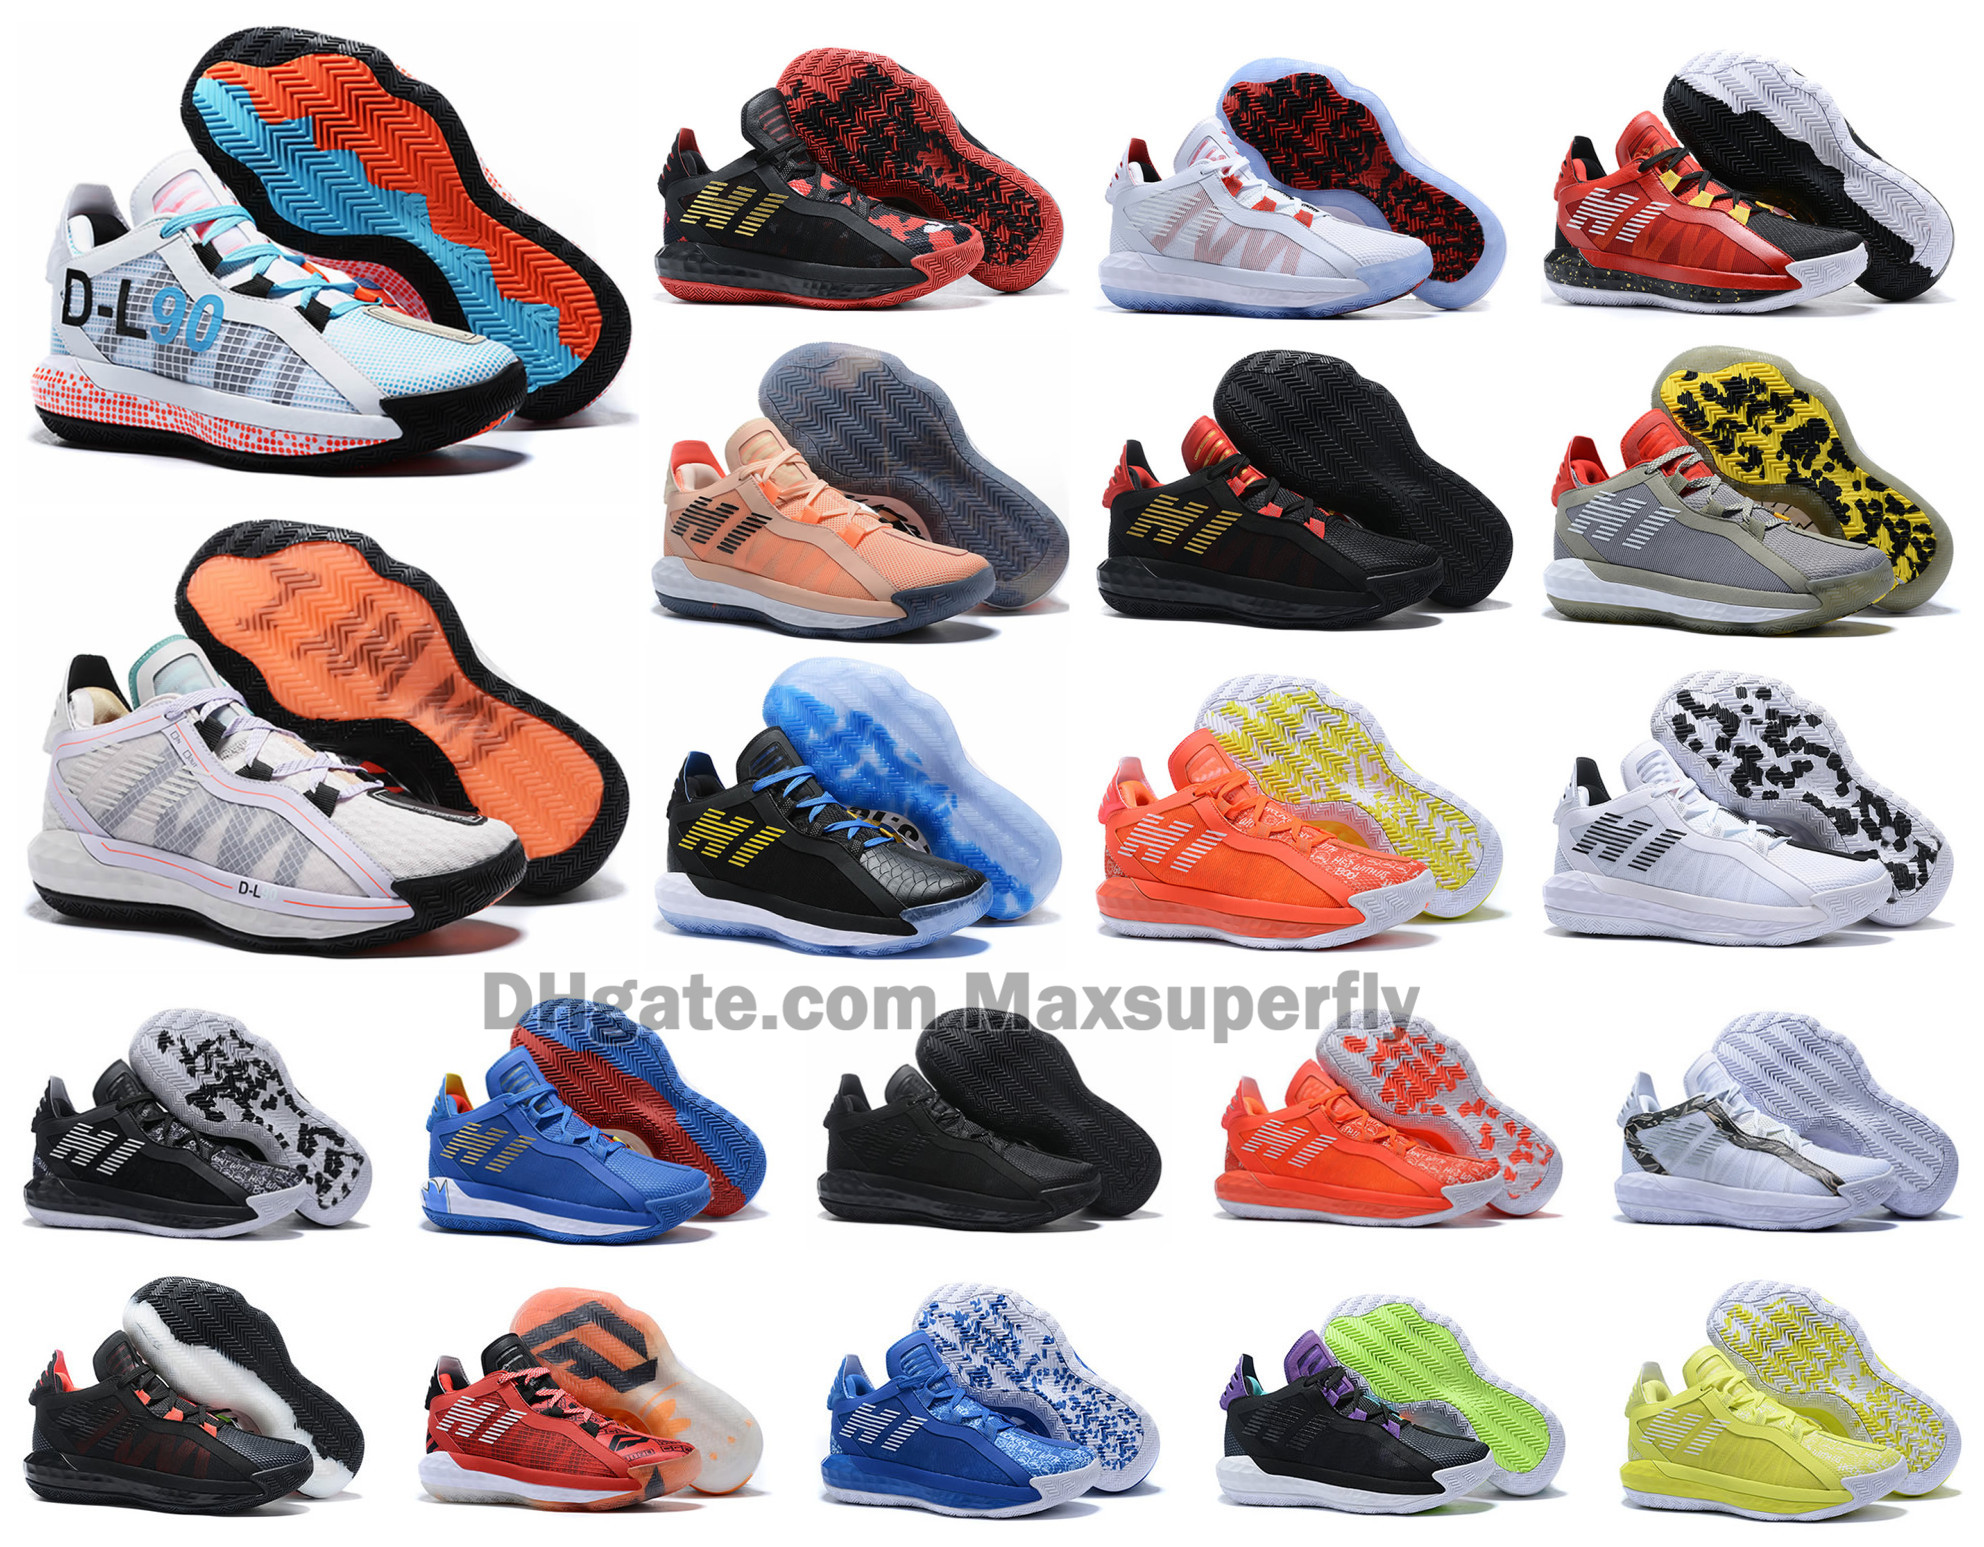 Wholesale Best Damian Lillard Shoes For Single S Day Sales 2020 From Dhgate